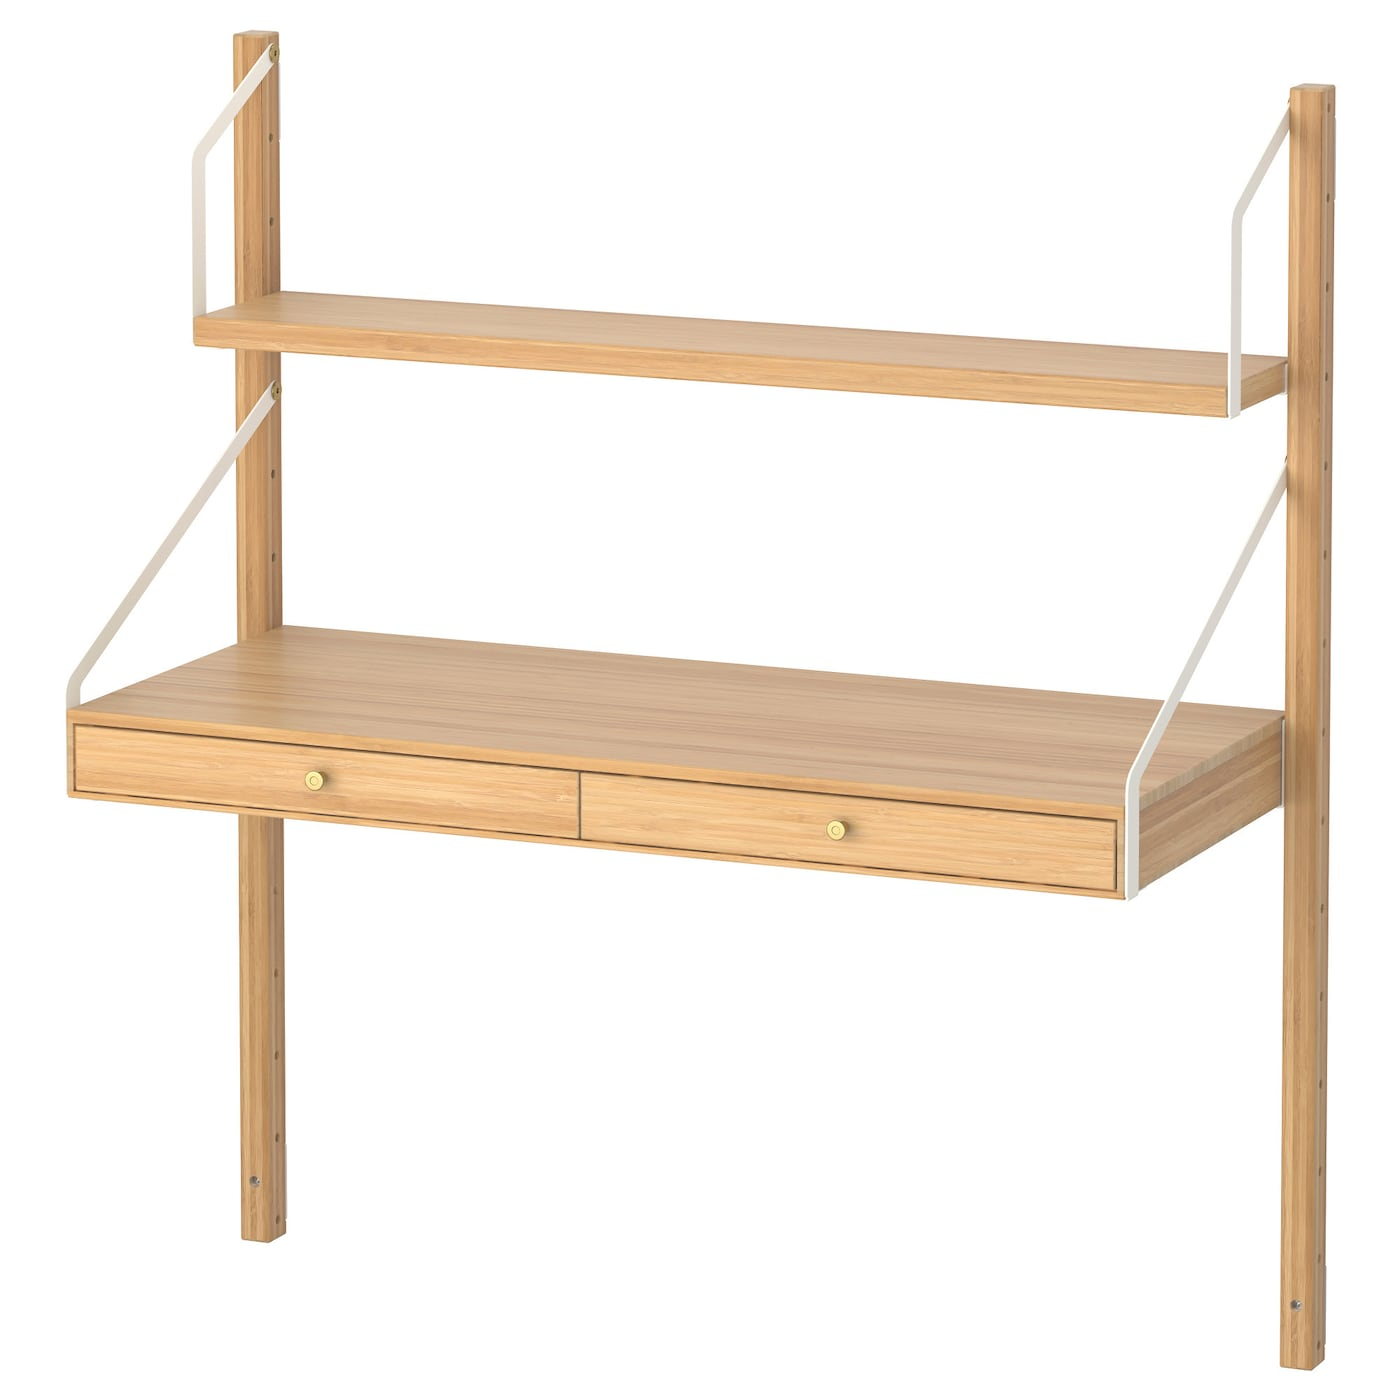 Svaln s s rie ikea - Ikea heure d ouverture ...